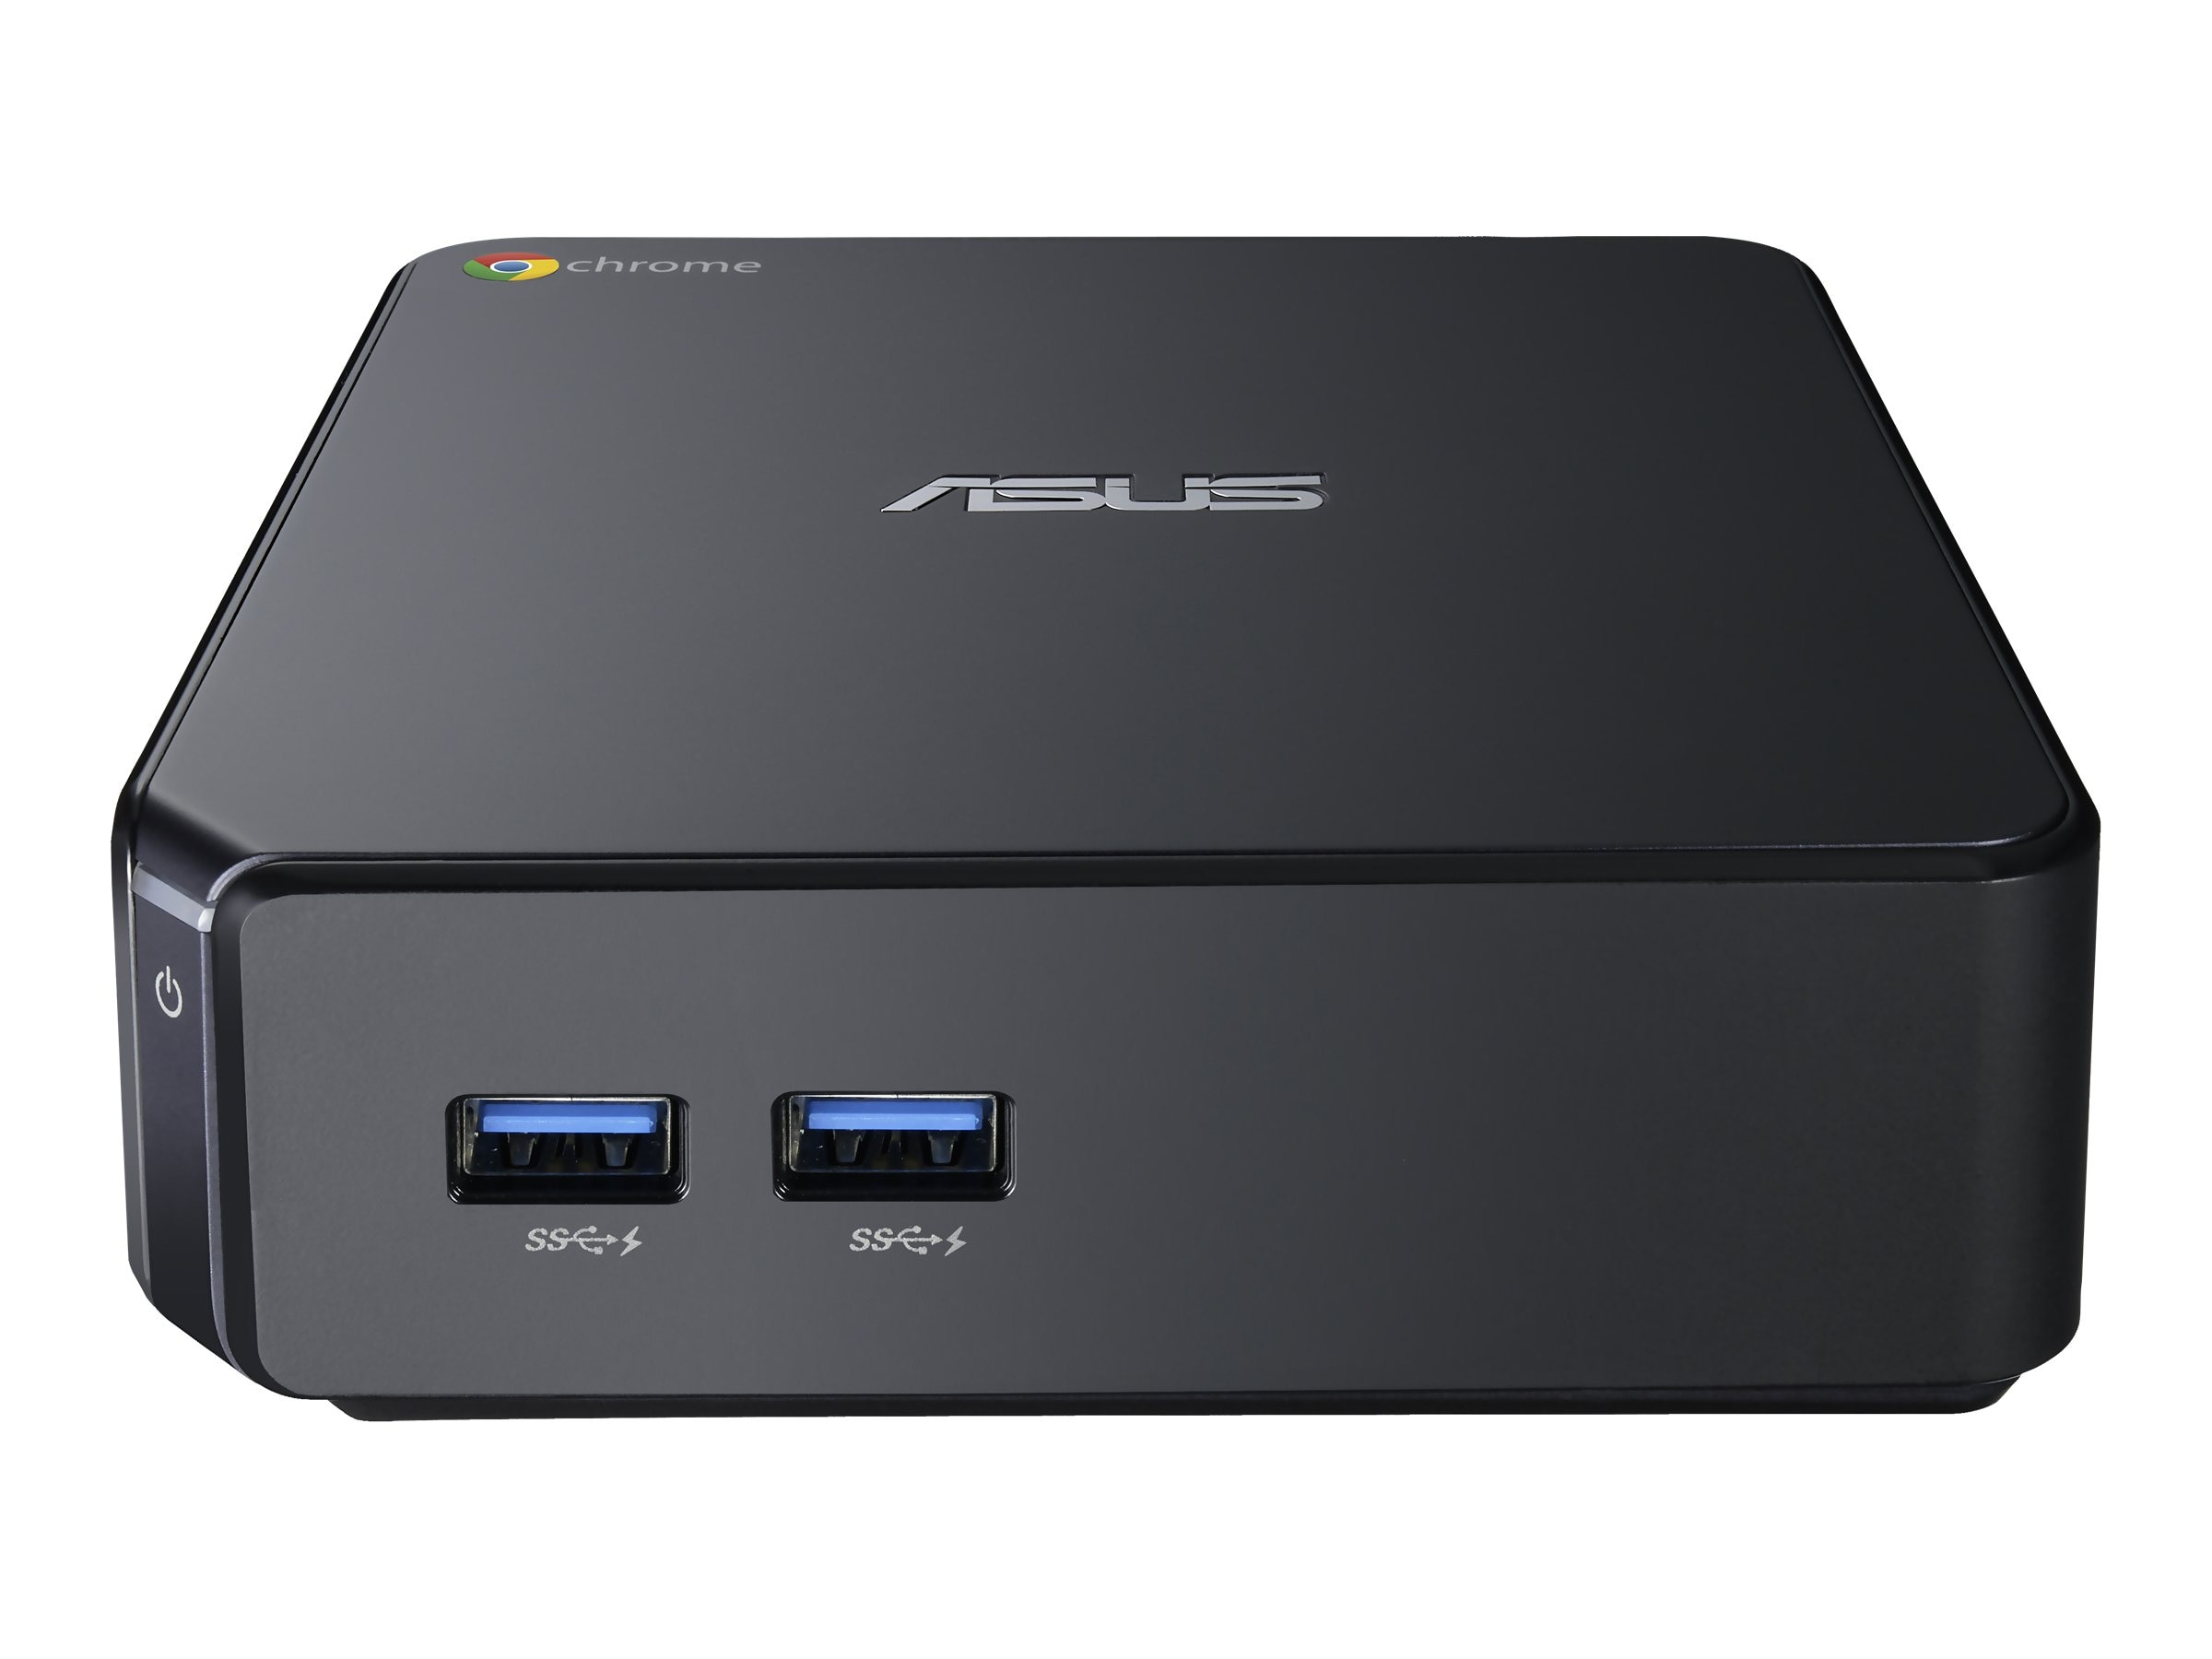 Asus Chromebox M075U Core i3-4010U 1.7GHz 4GB ChromeOS, CHROMEBOX-M075U, 17250348, Desktops